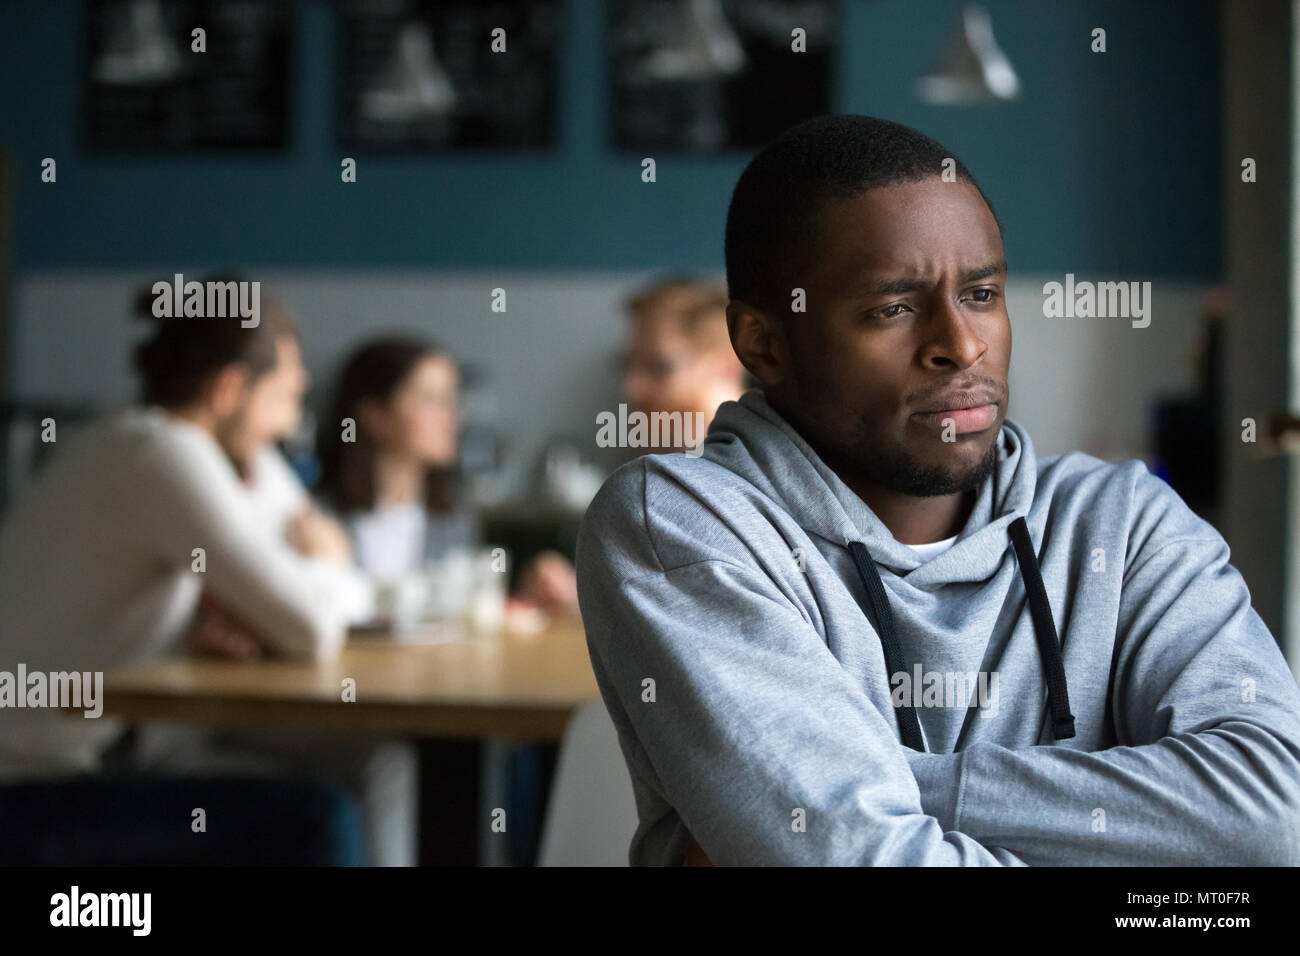 Frustrated african man suffers from racial discrimination alone  - Stock Image